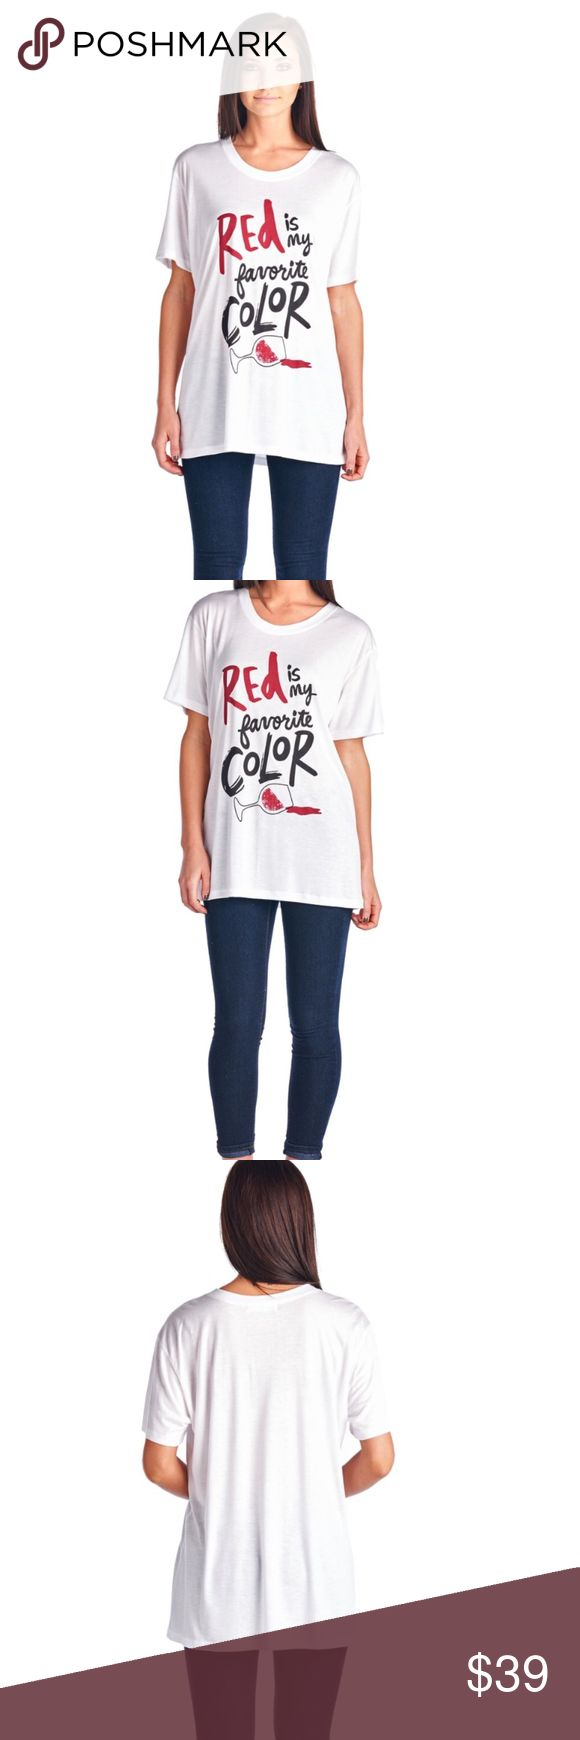 Wine graphic women's tee shirt RED is my favorite color...that is when it comes to Wine!! Make the best statement with this fabulous hand drawn graphic tee. Made of soft rayon jersey, great loose fit and style. Classic tee shape. Get it while it lasts! v/n Tops Tees - Short Sleeve